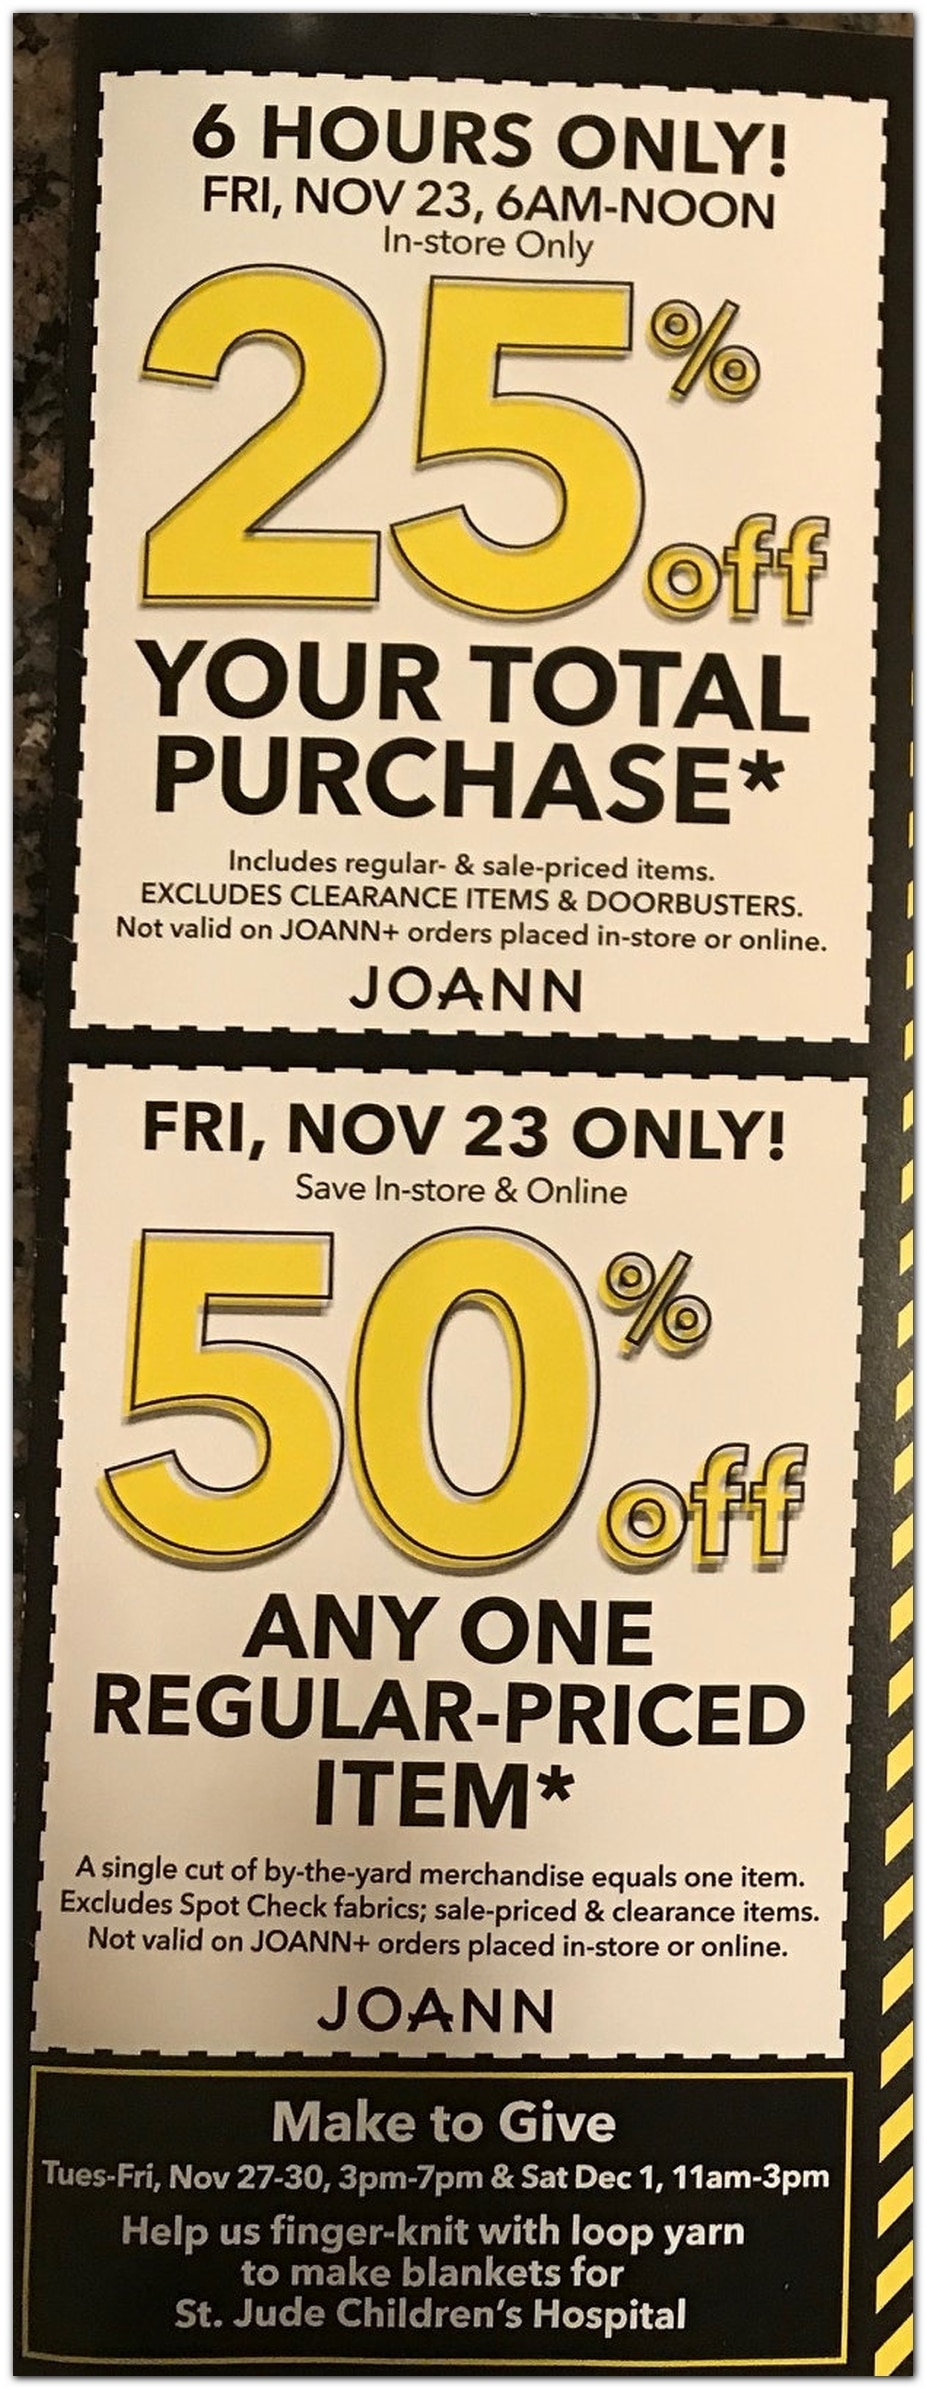 Joanns Black Friday Ad